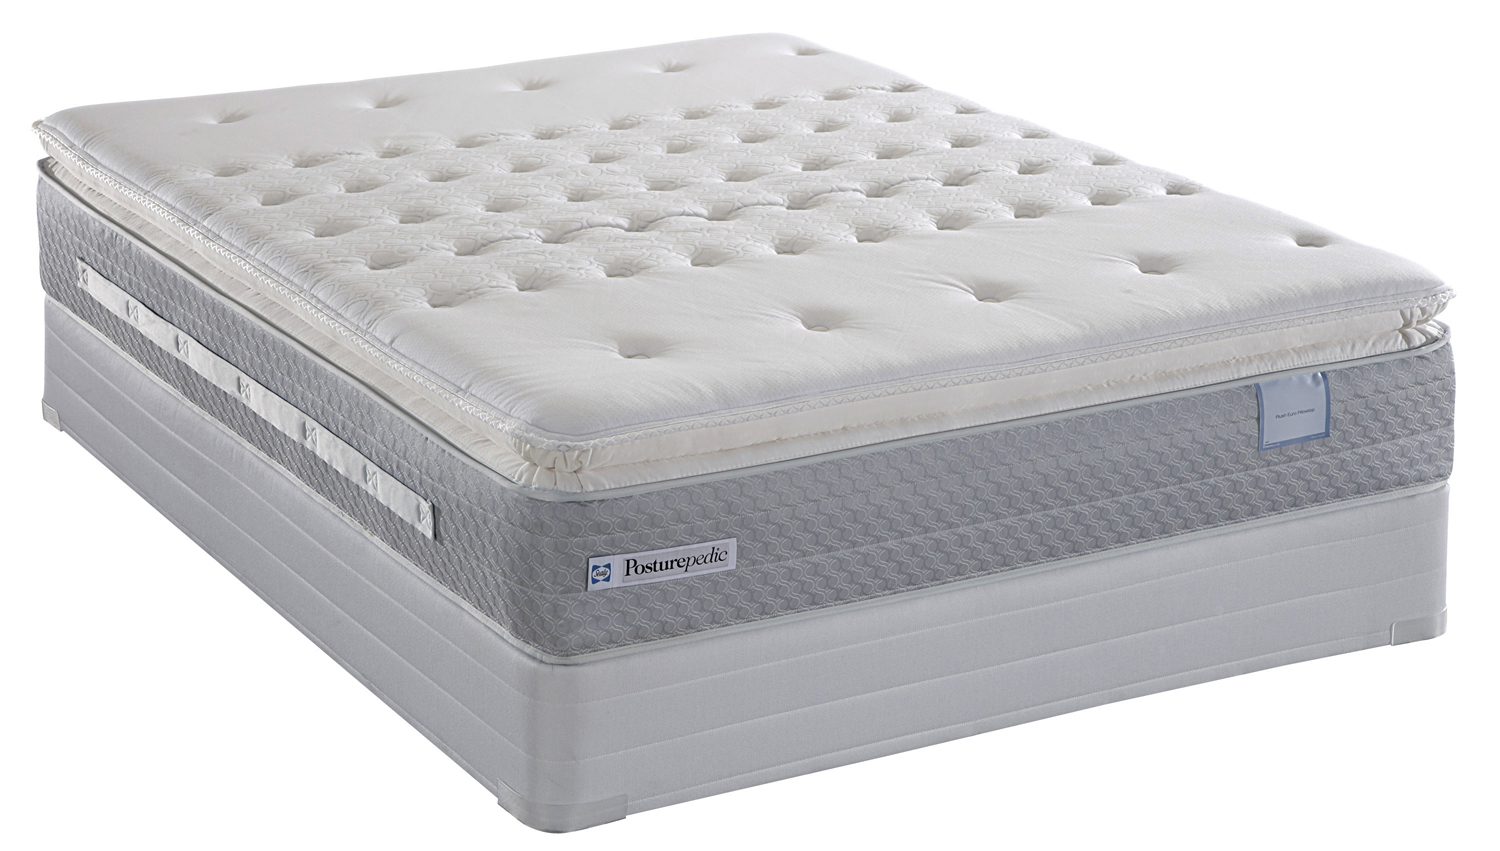 Sealy Posturepedic Anium Ss Firm Super Pillow Top